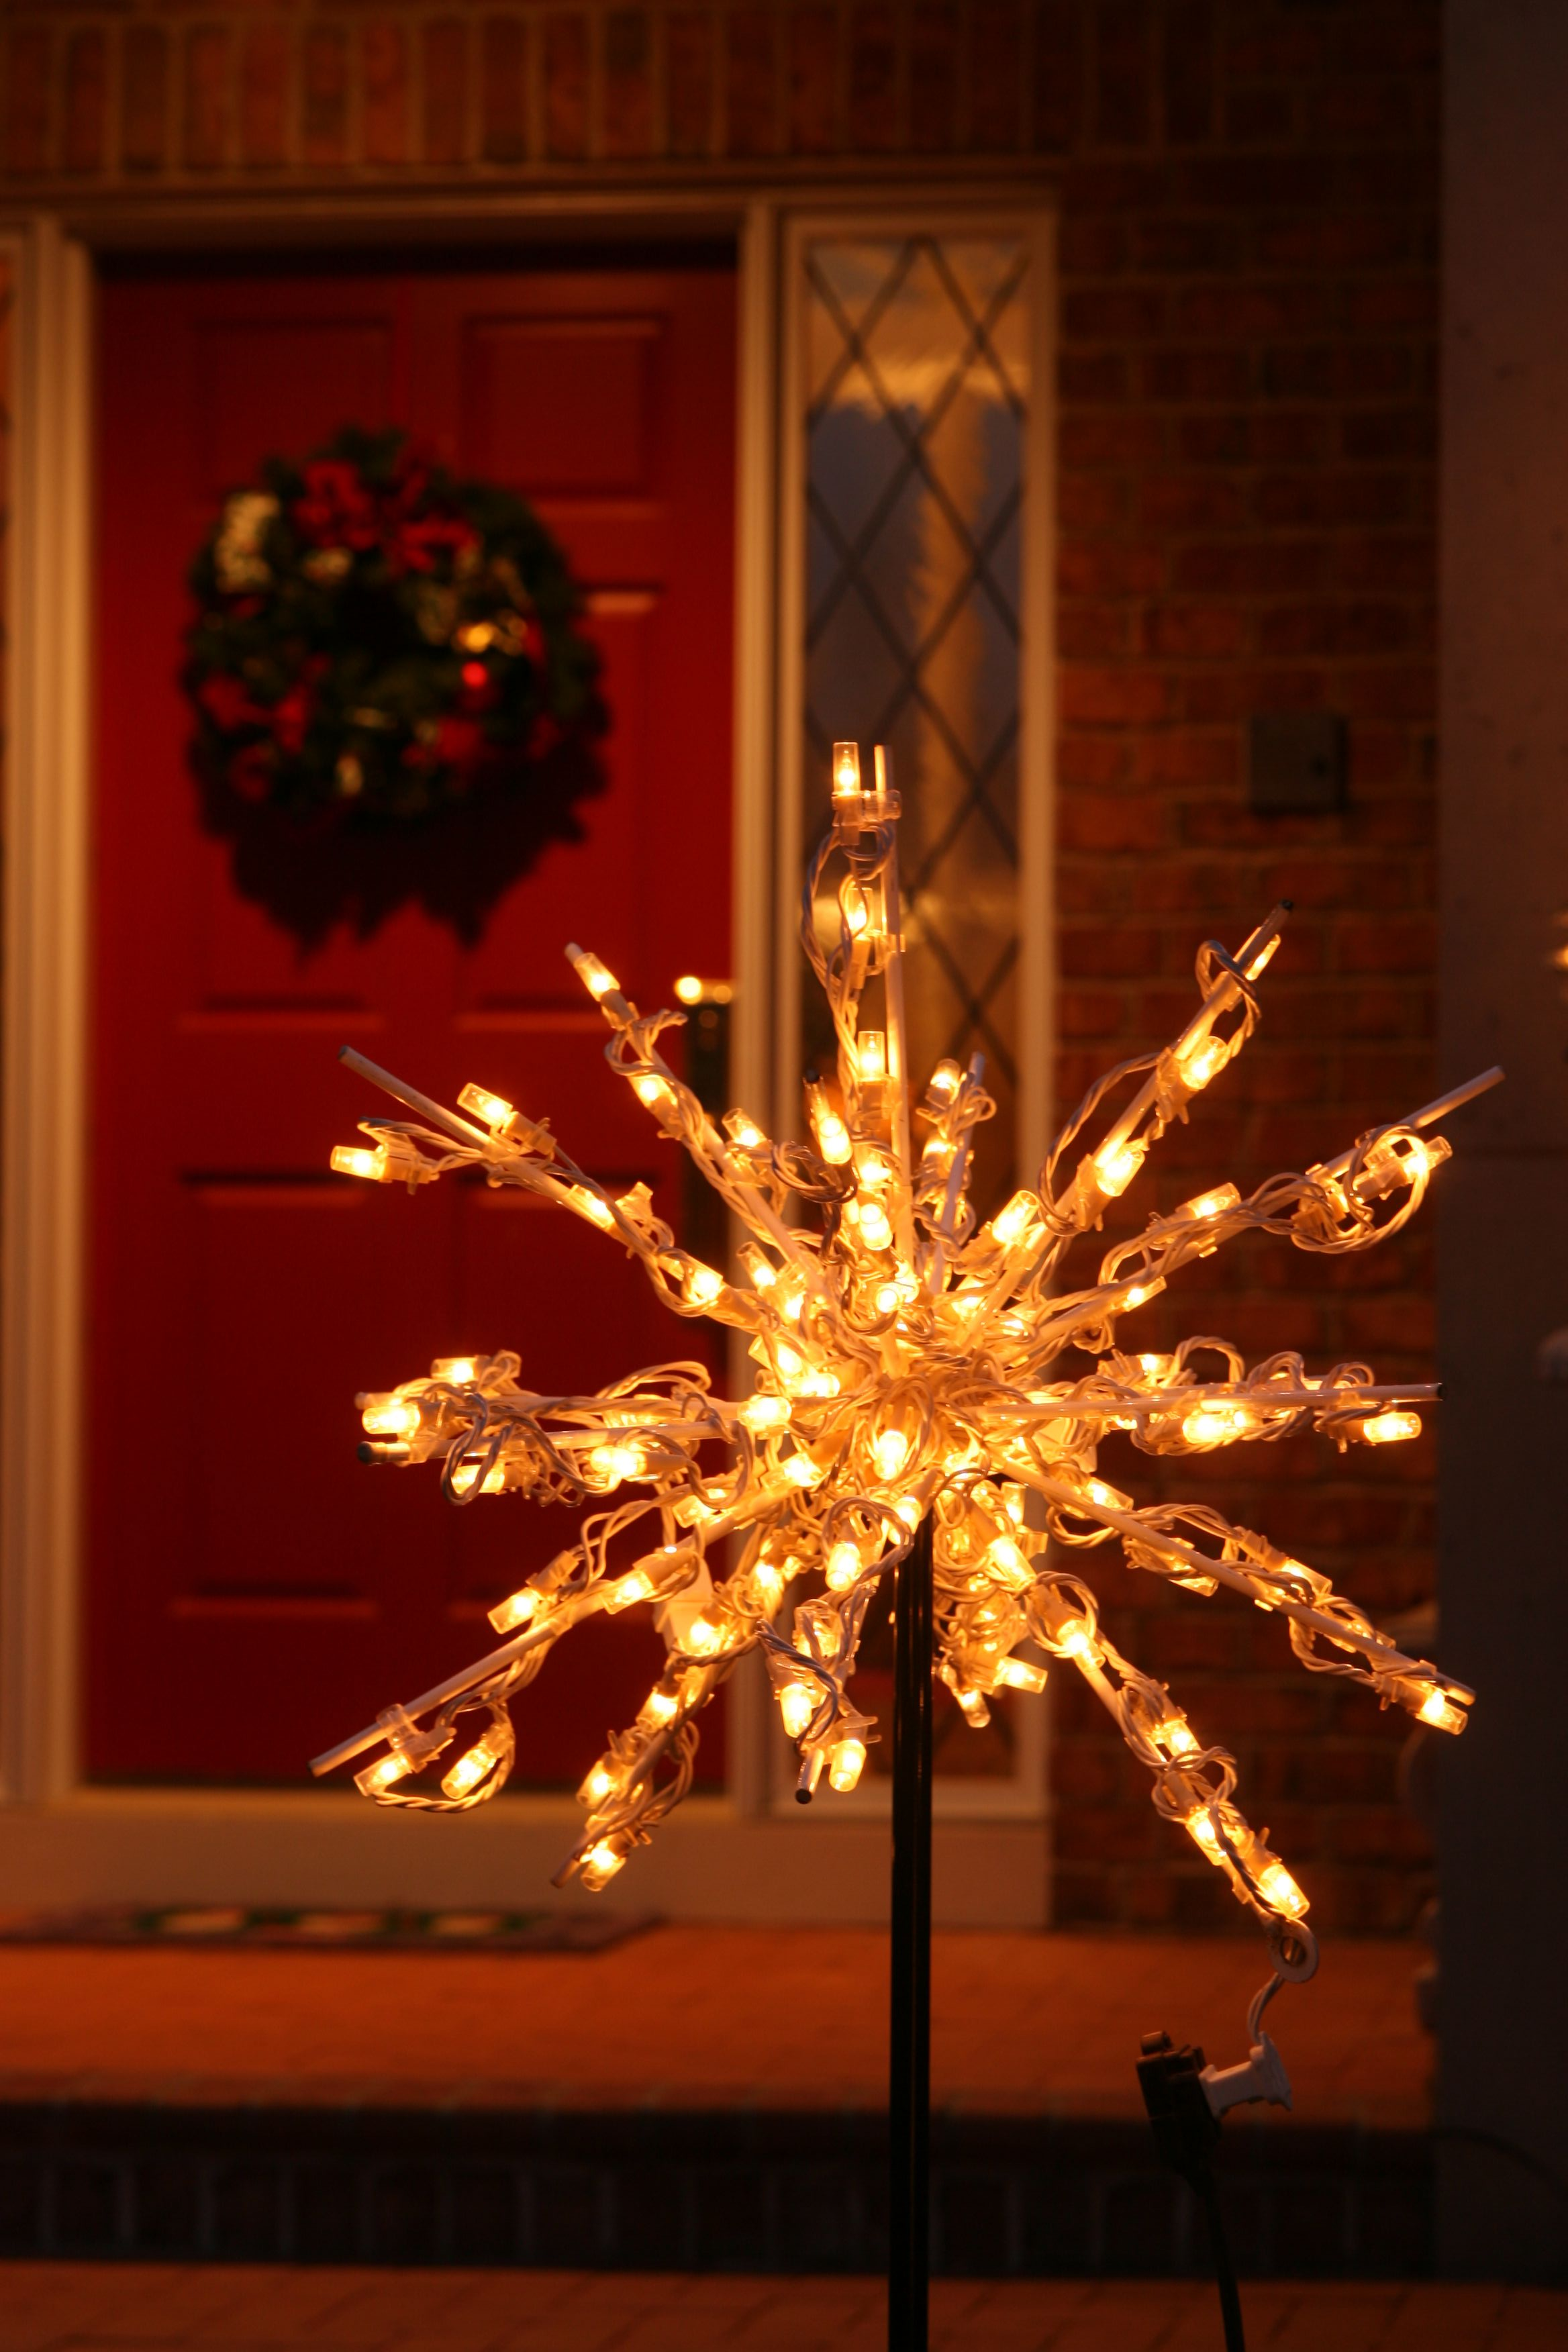 starbursts liven up the holiday mood anywhere on your lawn